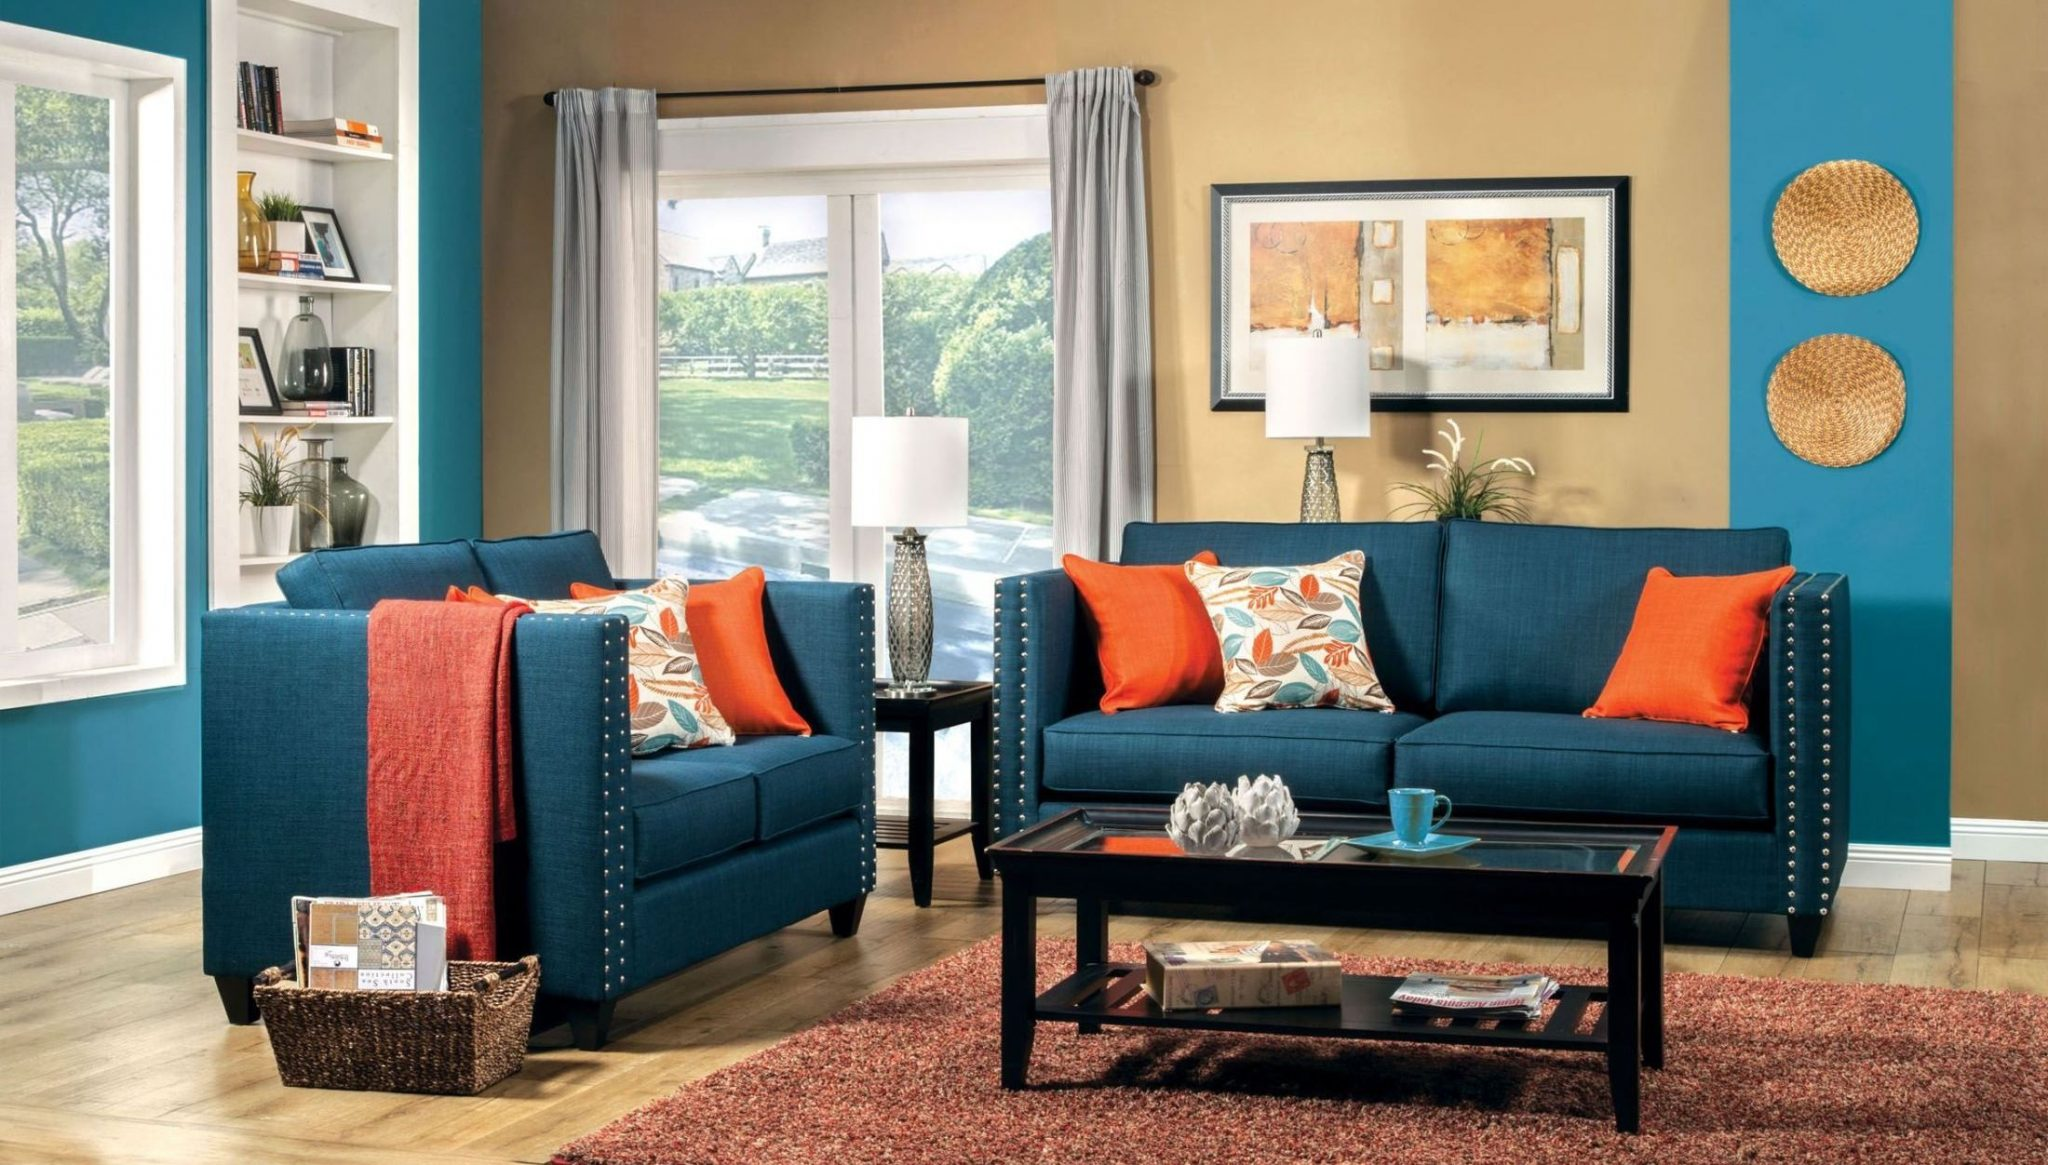 Admirable living area in brown and turquoise